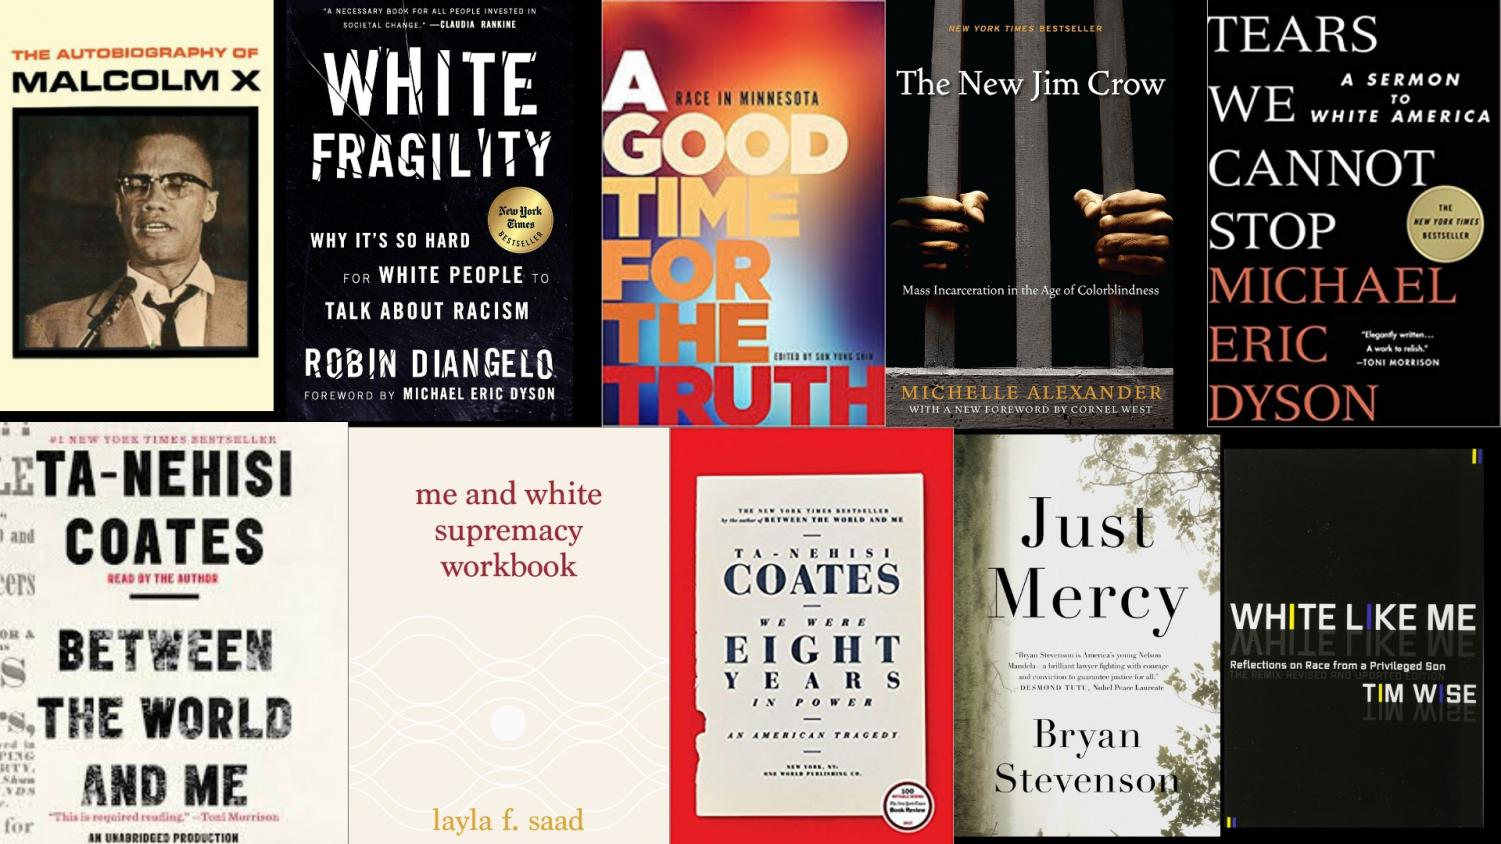 Every white person has white privilege and therefore contributes to the system of white supremacy. In order to actively work against racism, we must educate ourselves about how to combat our privilege. Pictured above are a selection of books that should be read in order to combat white supremacy in our society.